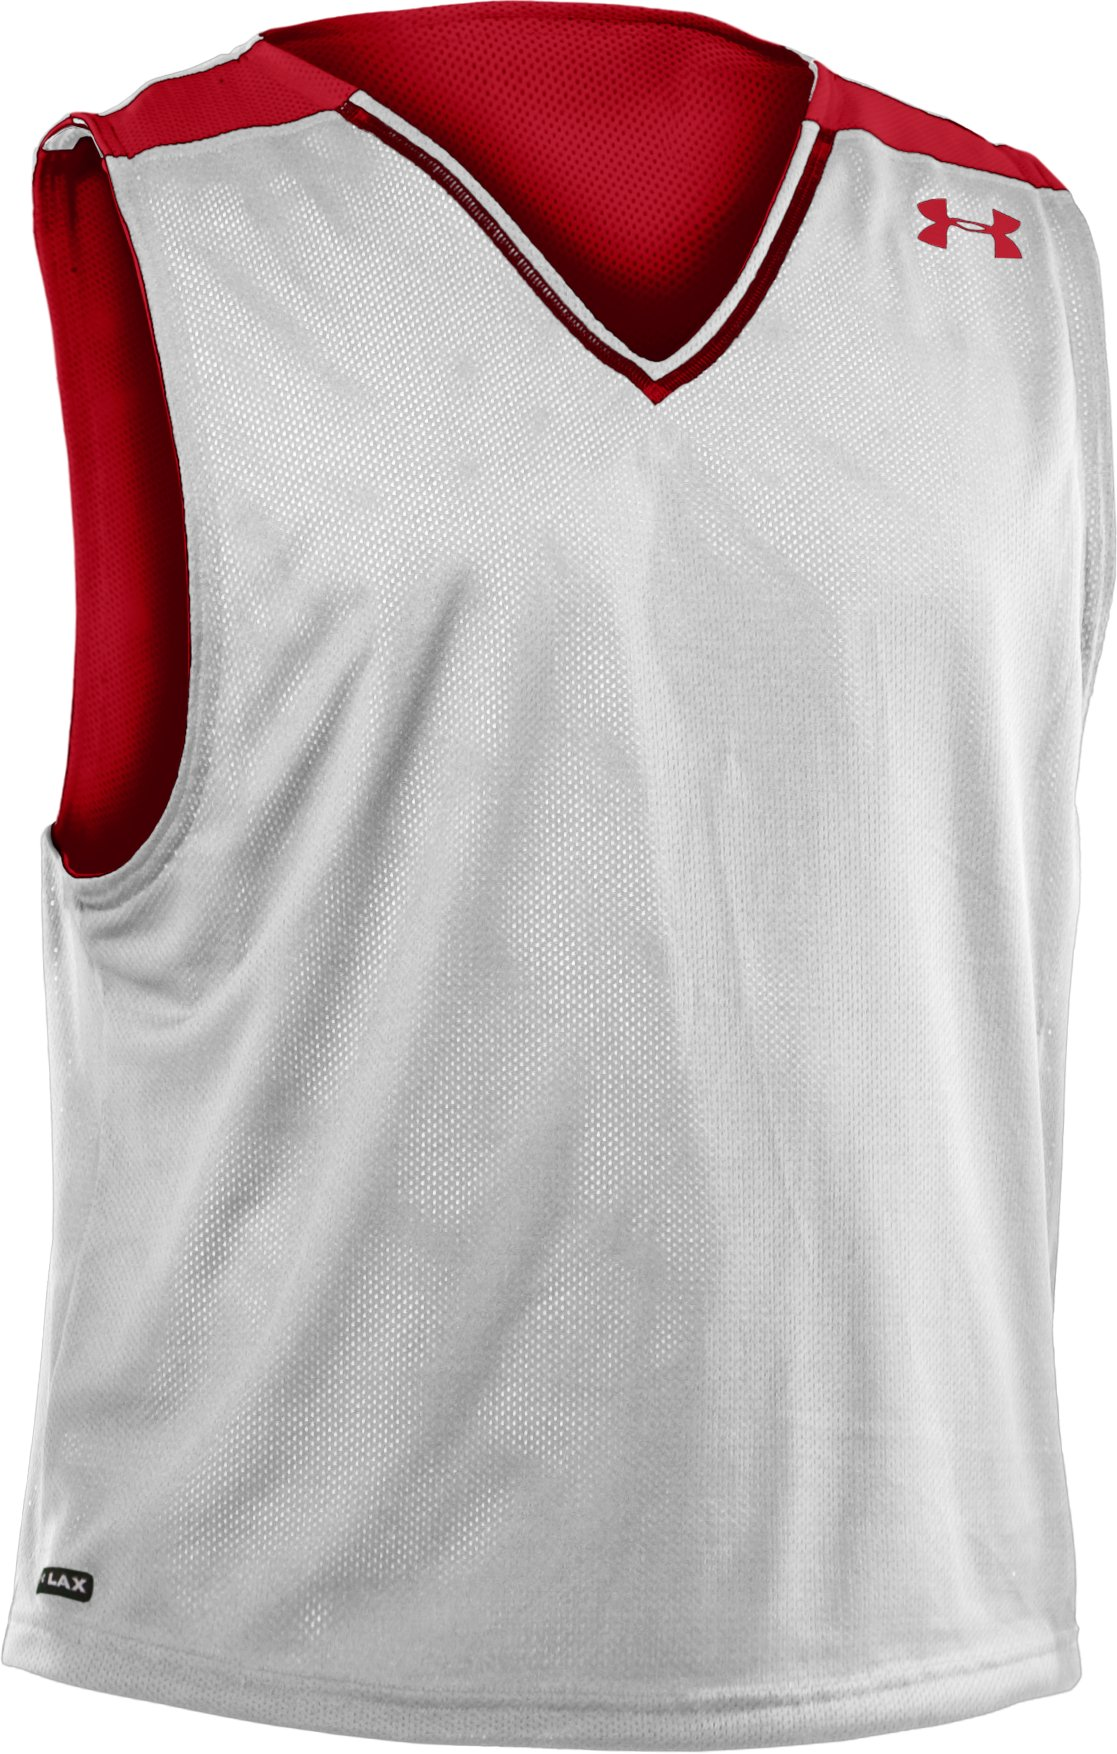 Men's Practice Jersey, Red, undefined